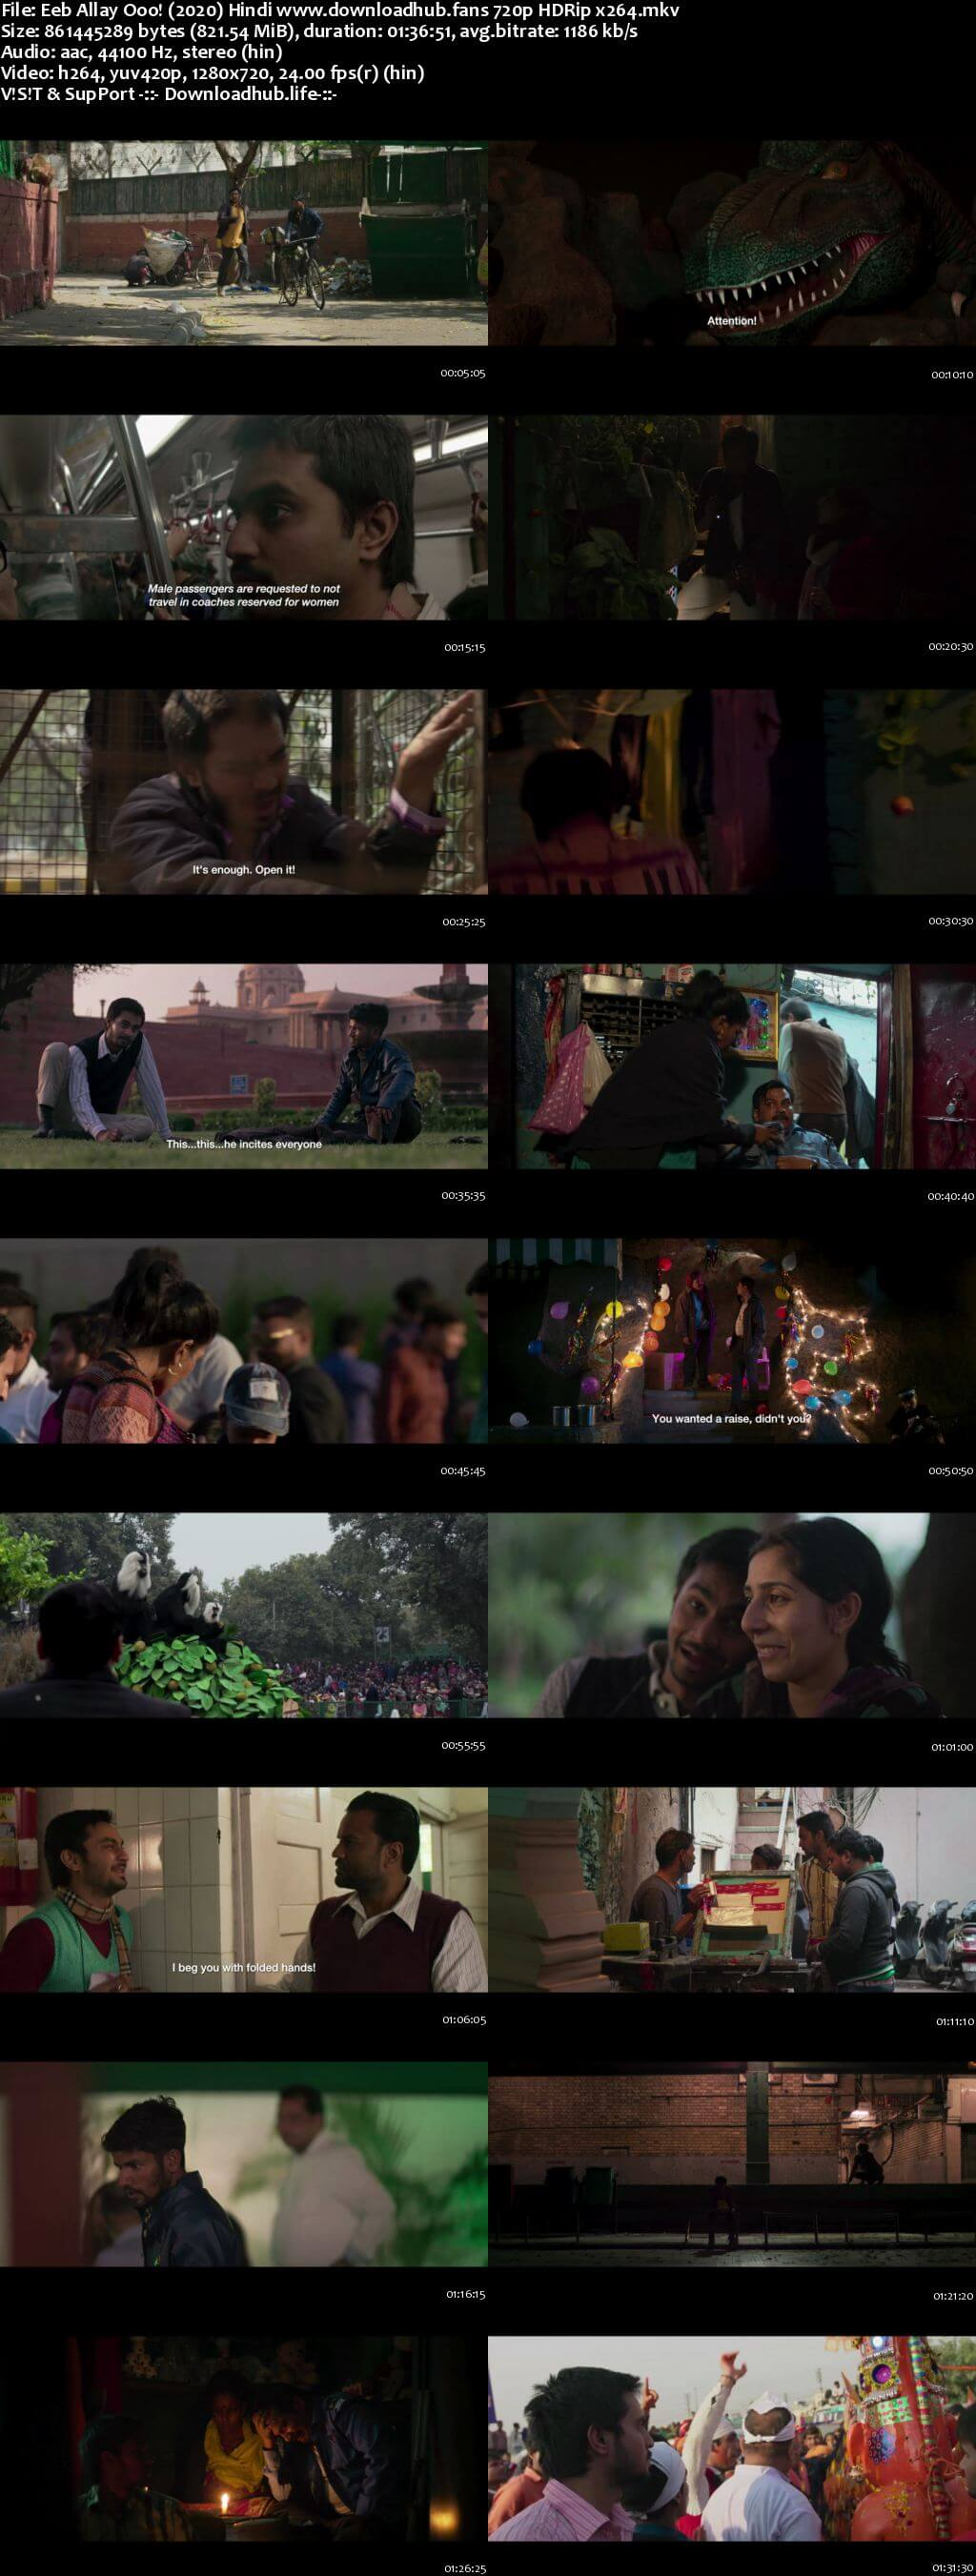 Eeb Allay Ooo 2019 Hindi 720p HDRip x264